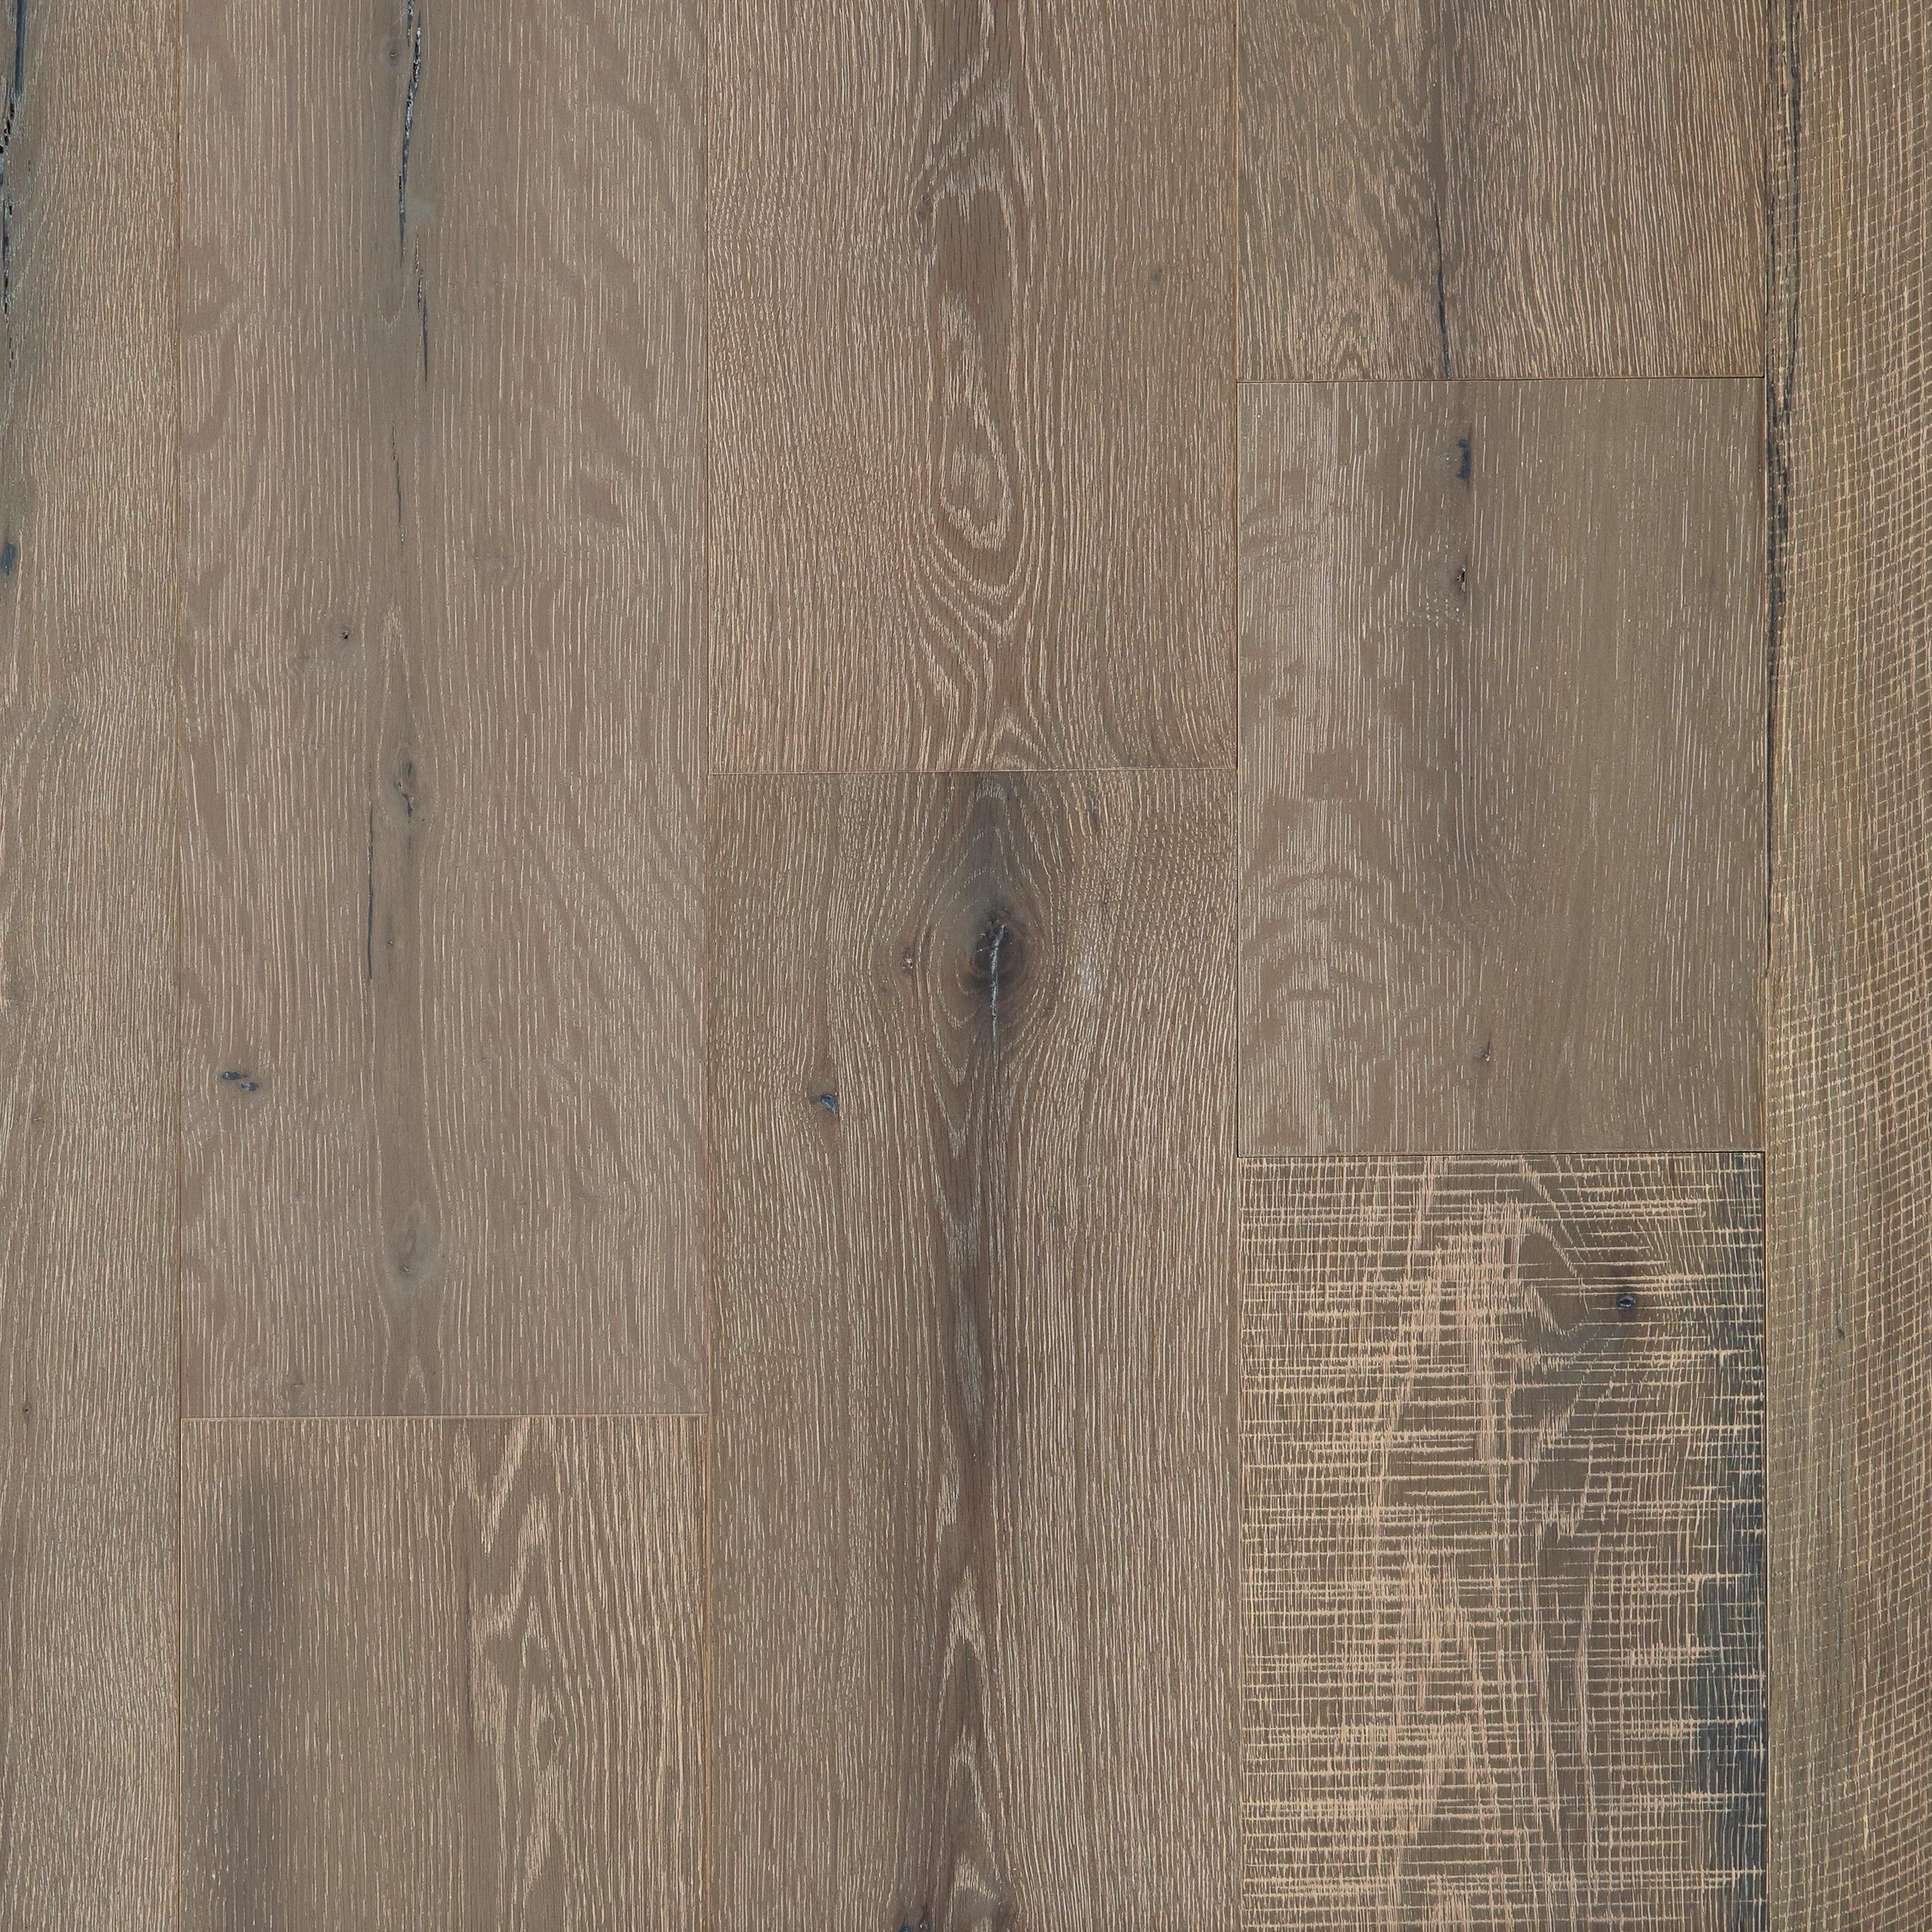 white oak hardwood flooring cost of grullo white oak distressed engineered hardwood products within grullo white oak distressed engineered hardwood